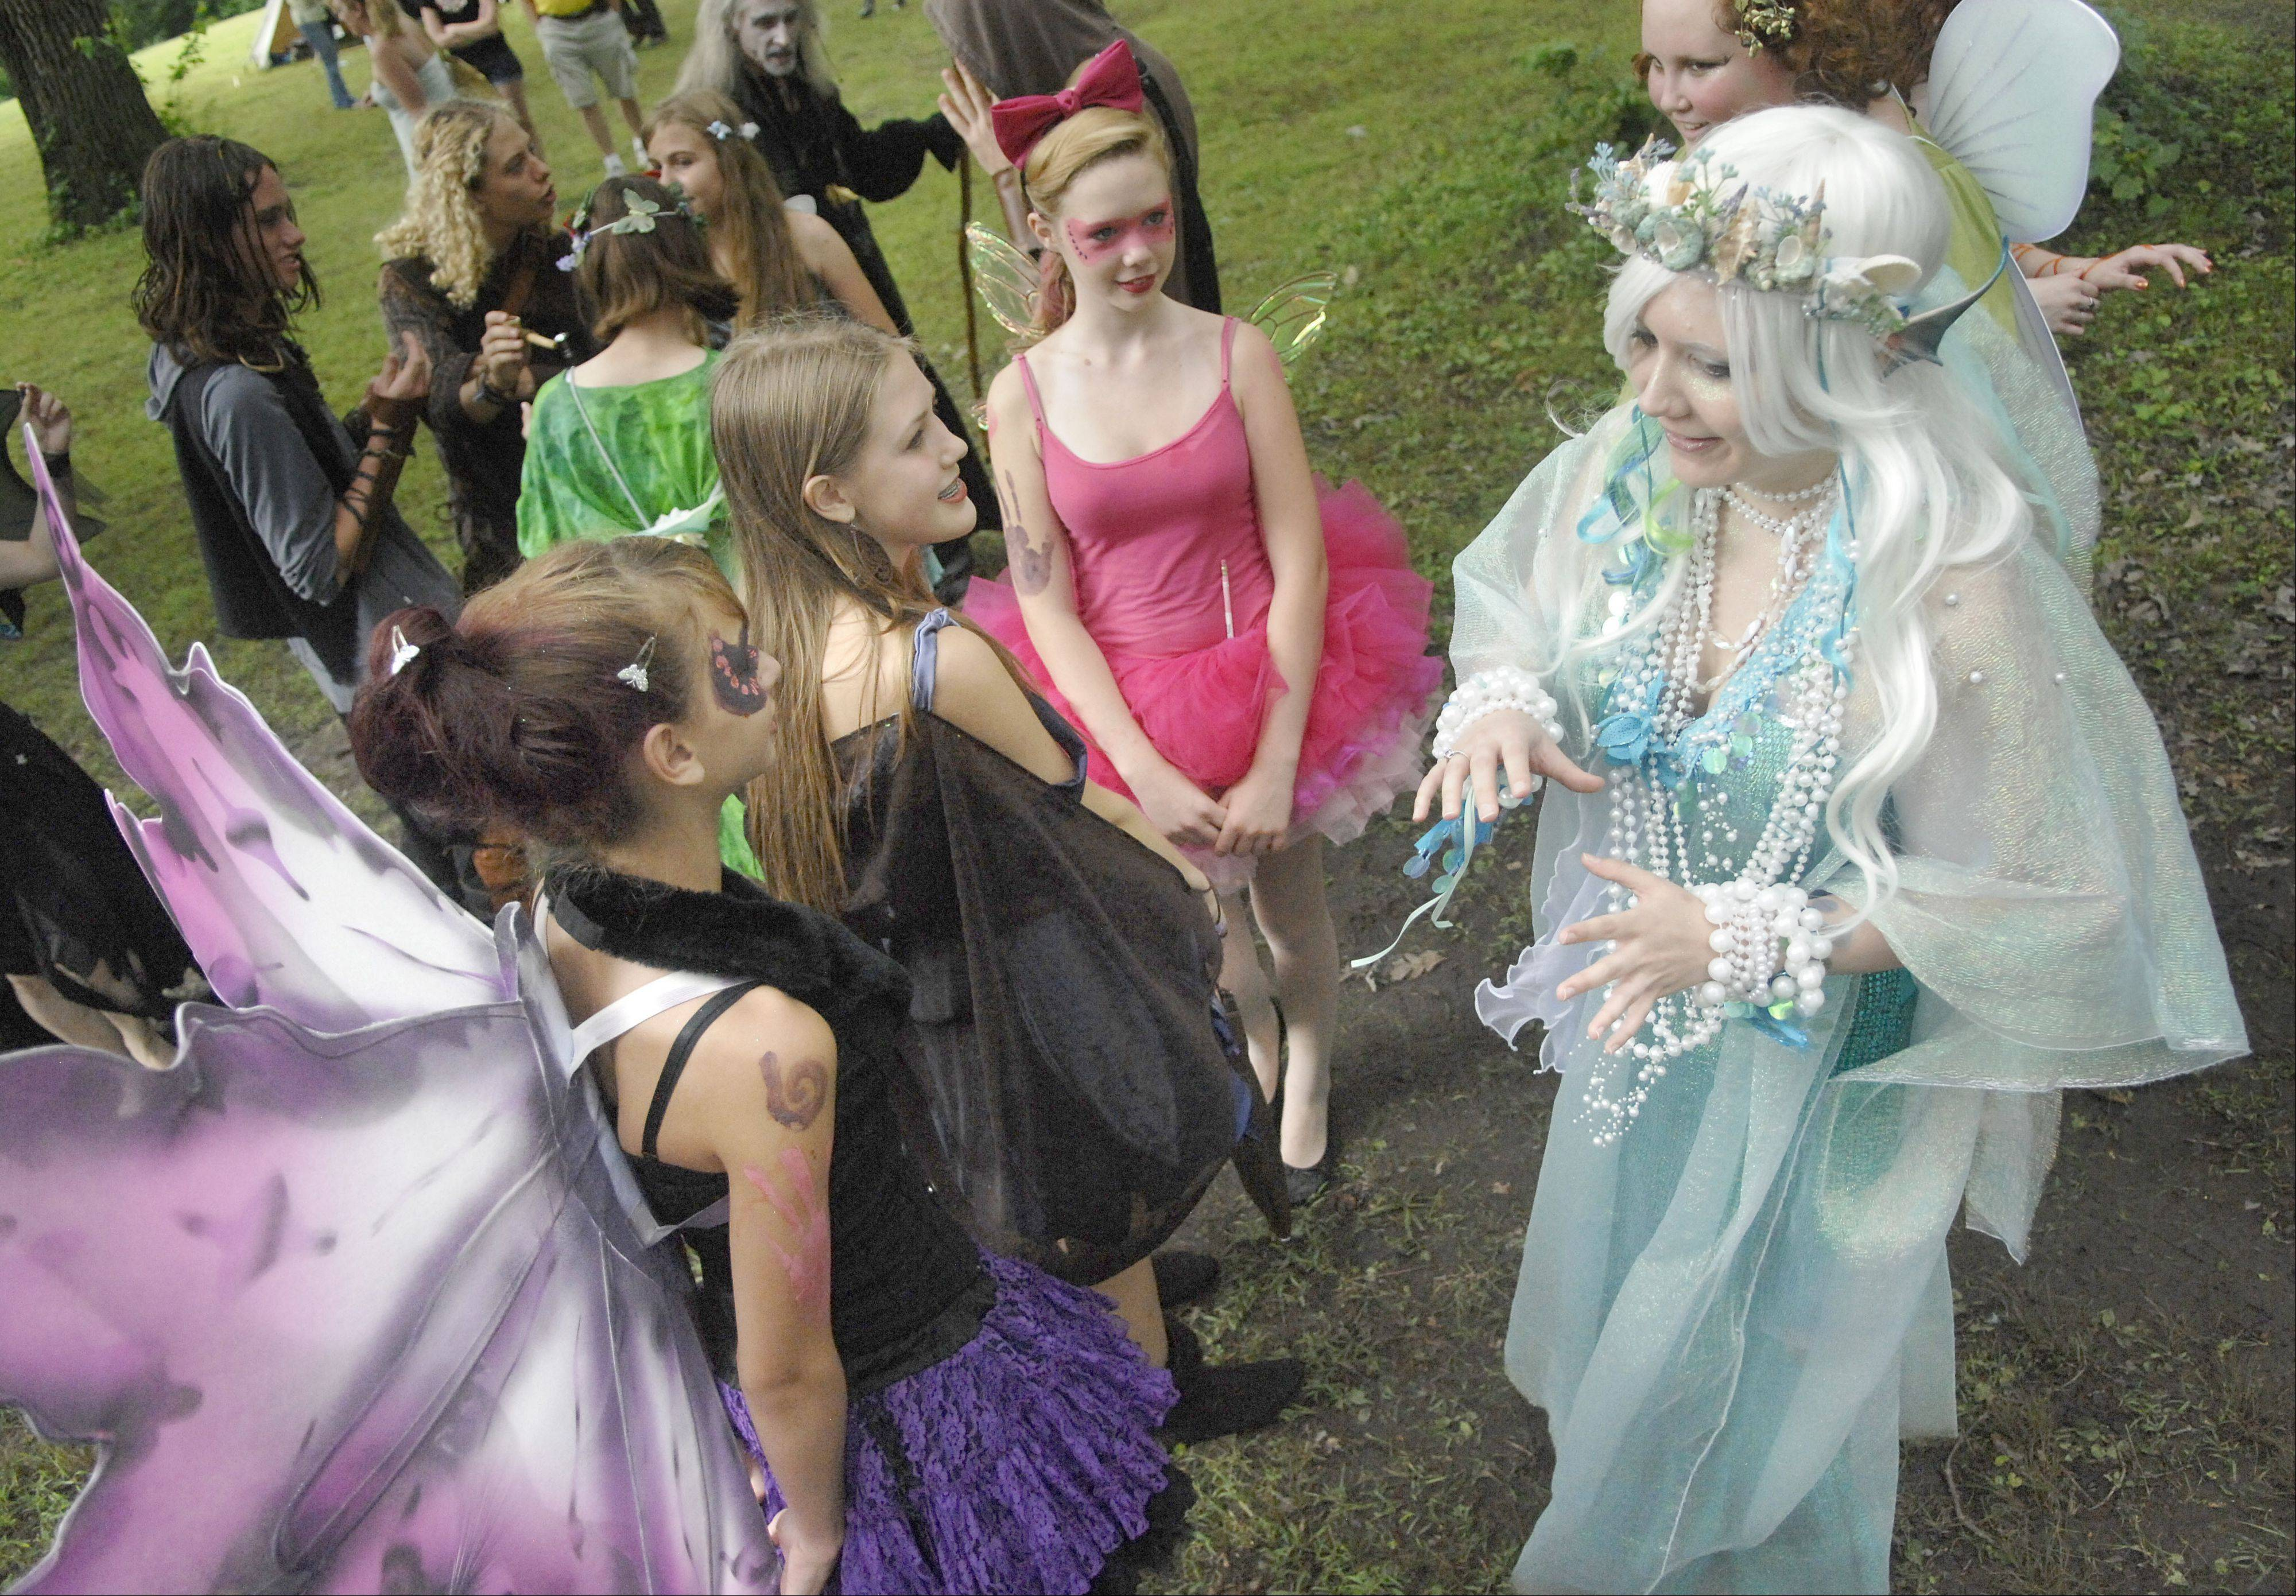 Marlo Musiel of Villa Park as Lemaris, right, speaks to fellow fairies from the Fairy Realm during last year's World of Faeries Festival at Vasa Park in South Elgin.